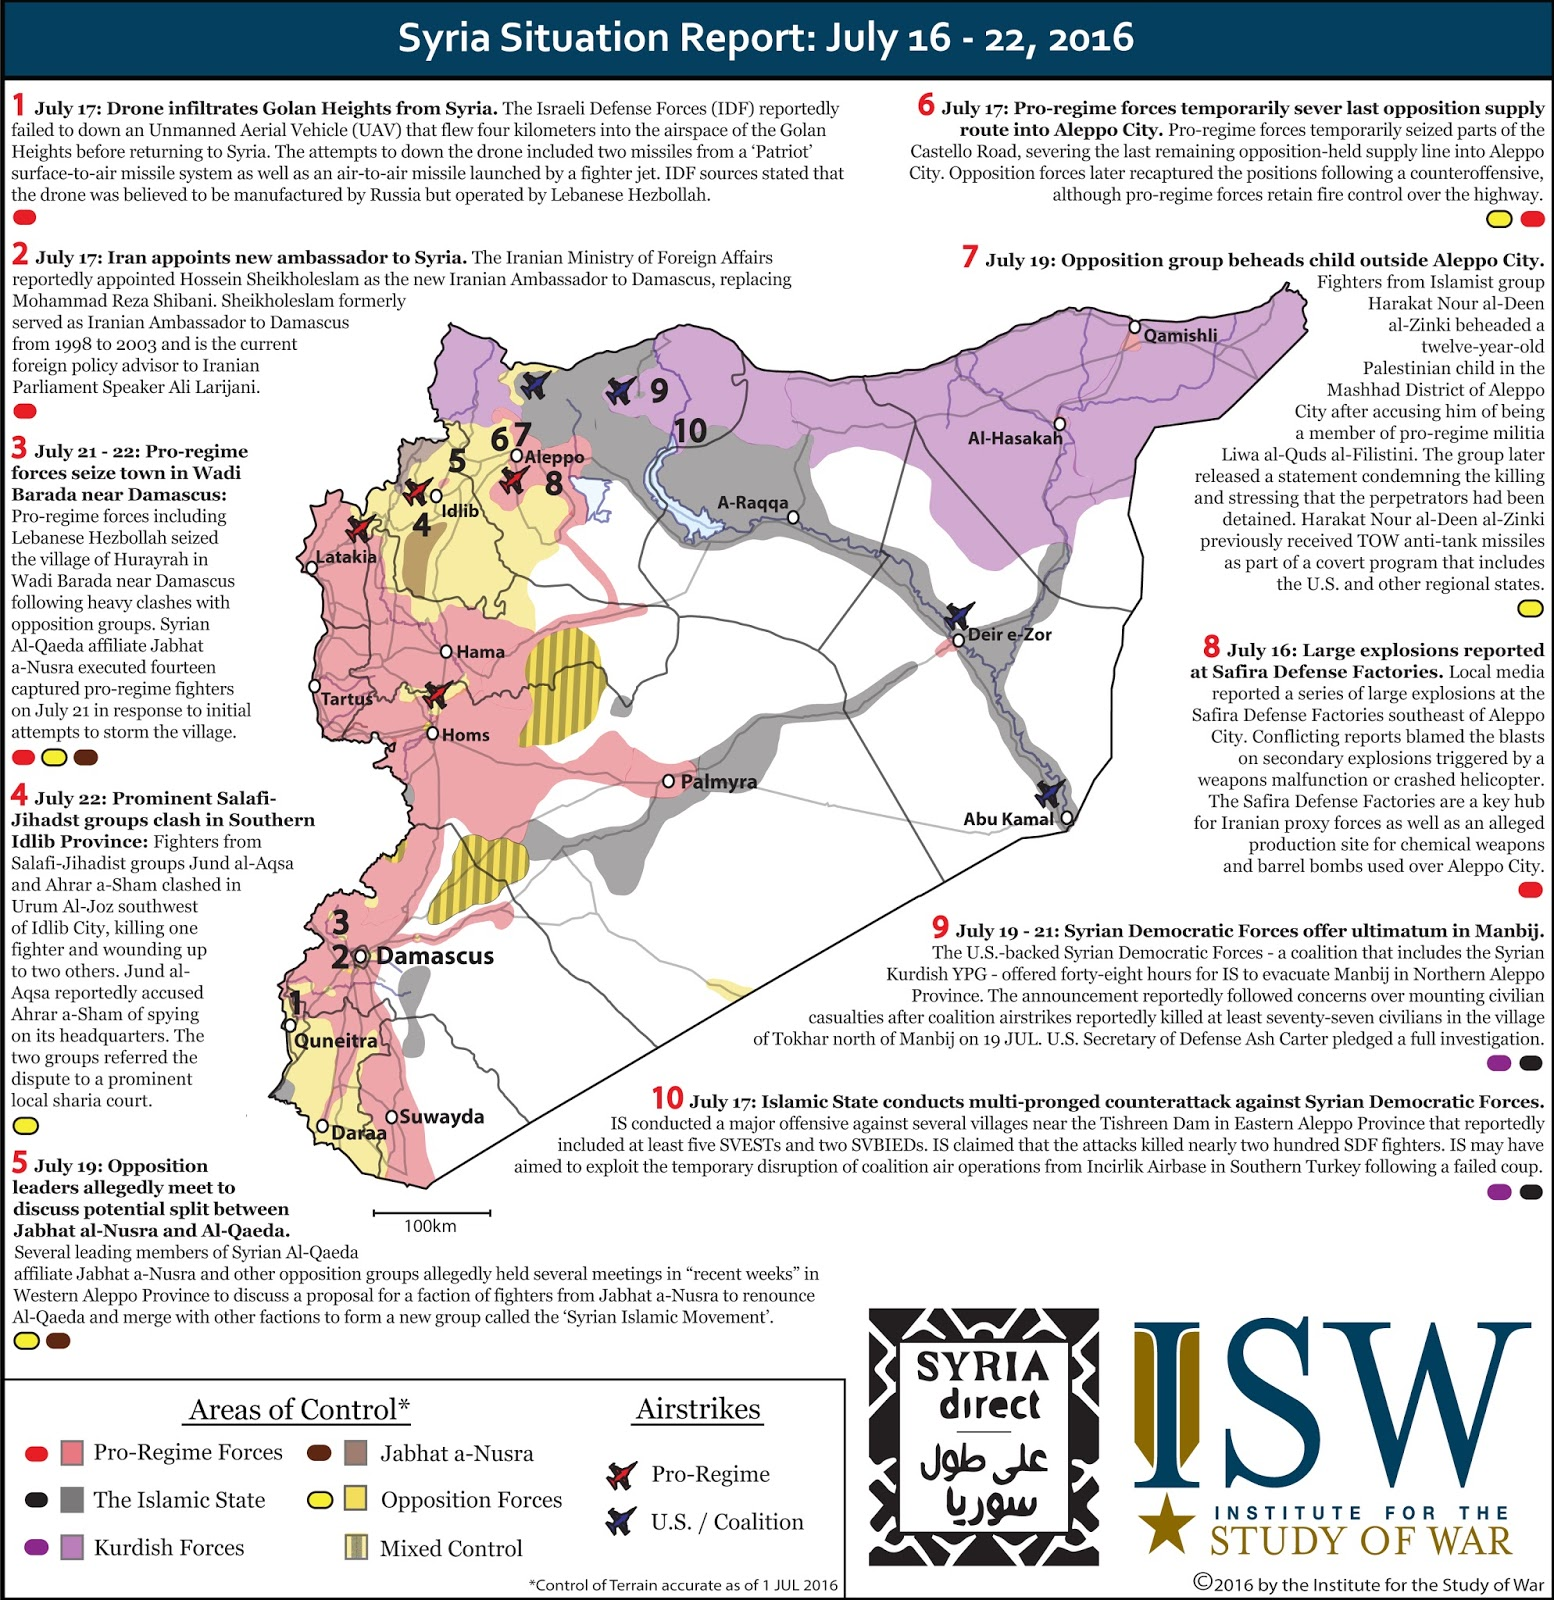 Eye On The World: Syria Situation Report: July 16 - 22, 2016